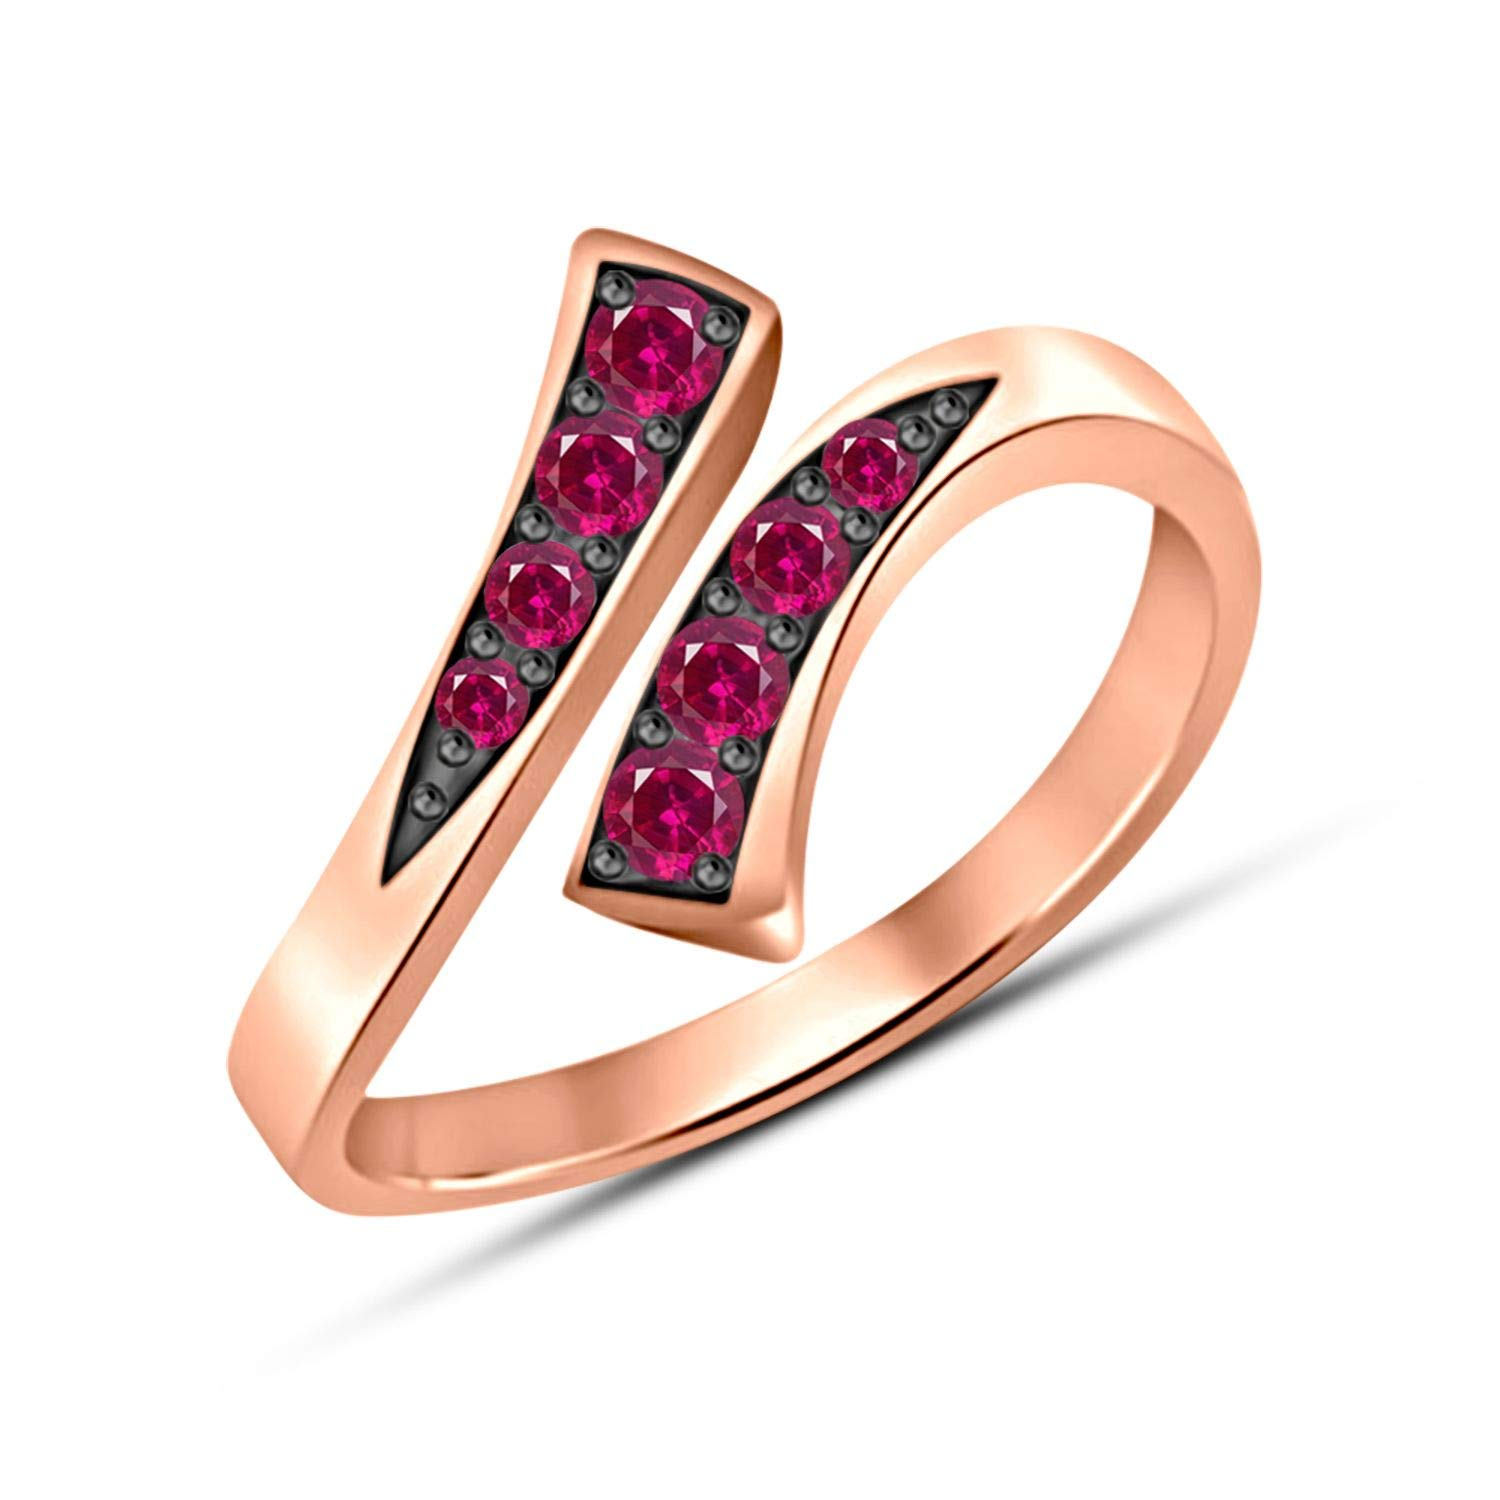 Gemstar Jewellery Designer Bypass Adjustable Toe Ring in 14k Two Tone Gold Finished Round Cut Red Ruby